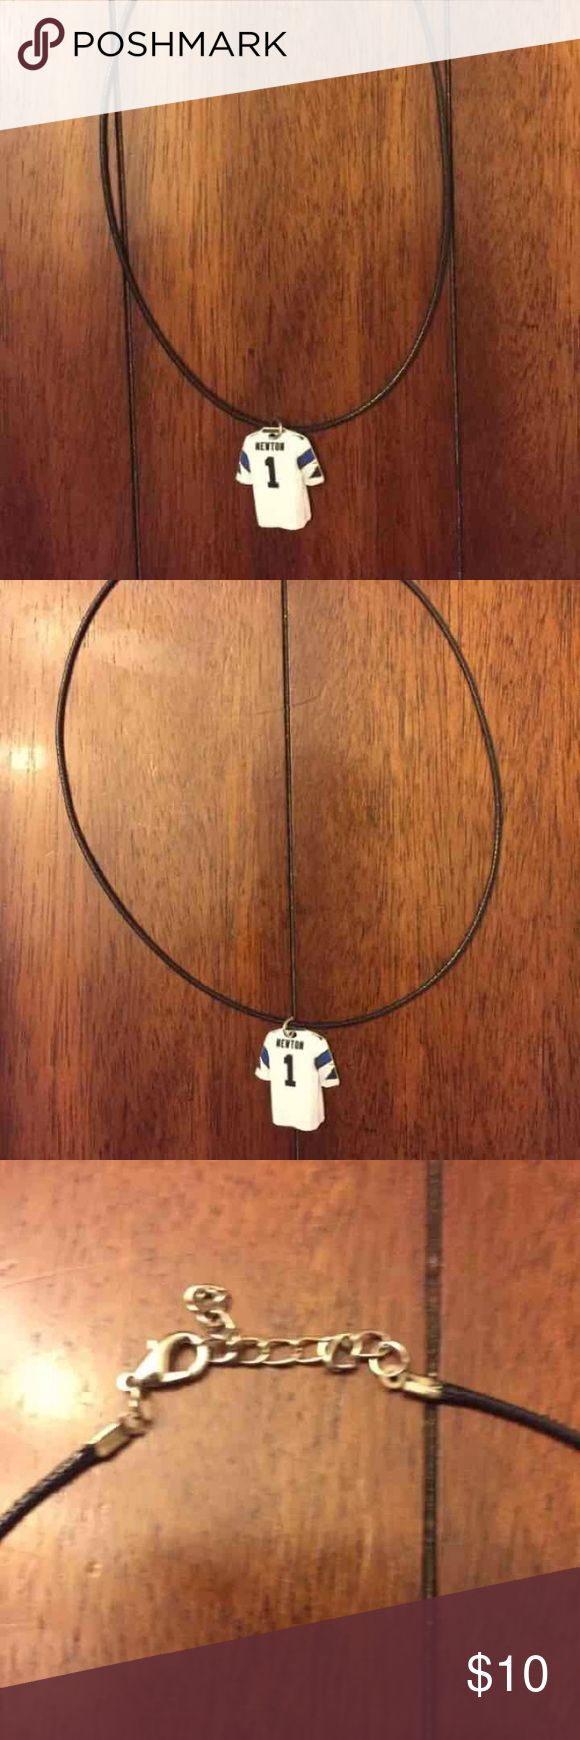 Cam Newton Panthers Necklace NFL CUTE!! Cam newton necklace, handmade.  Cam Newton Panthers Necklace NFL Football.  CUTE!!! Jewelry Necklaces